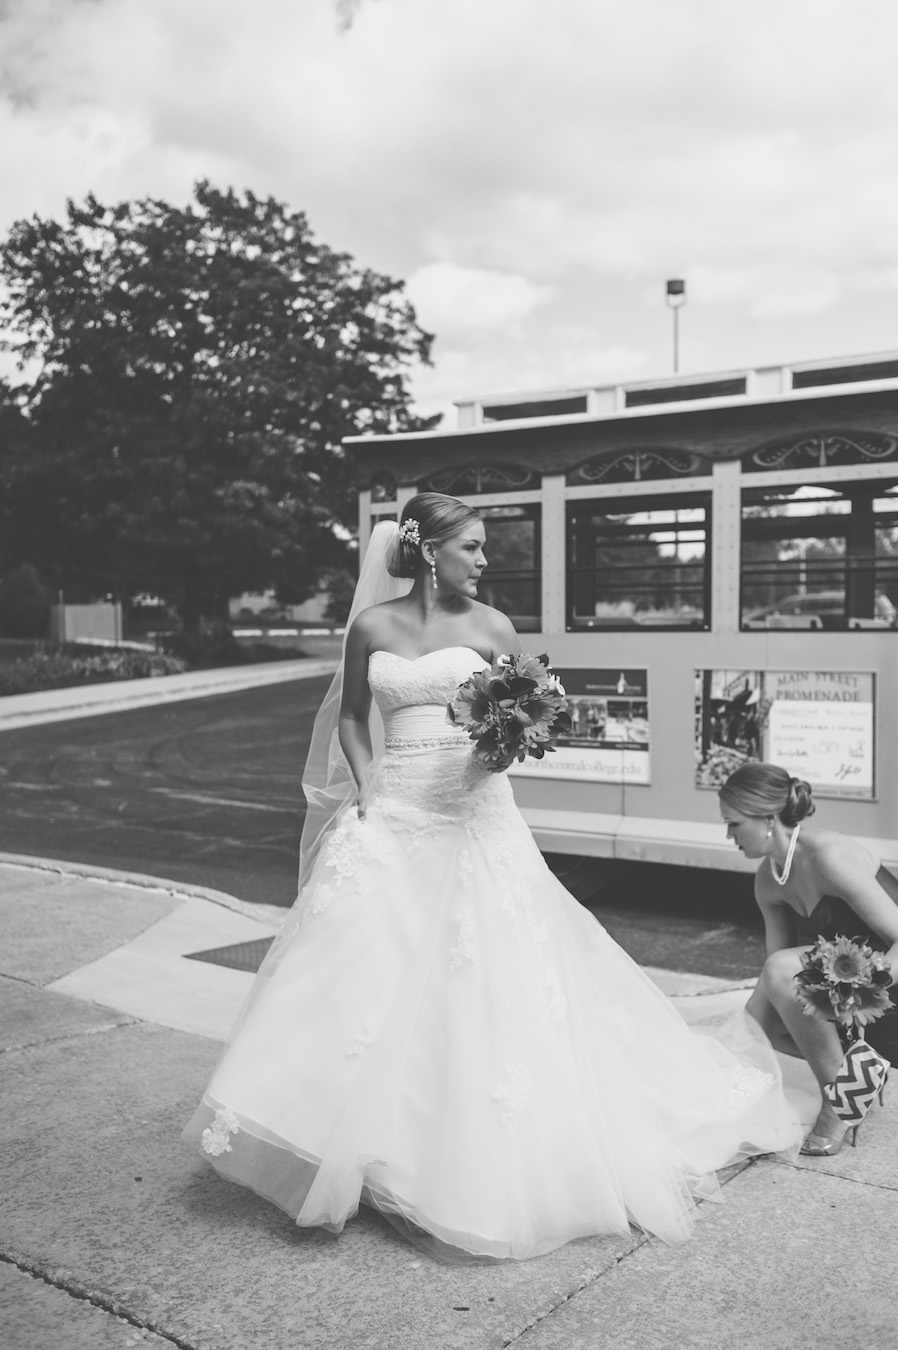 20130921140122_naperville_chicago_wedding.jpg